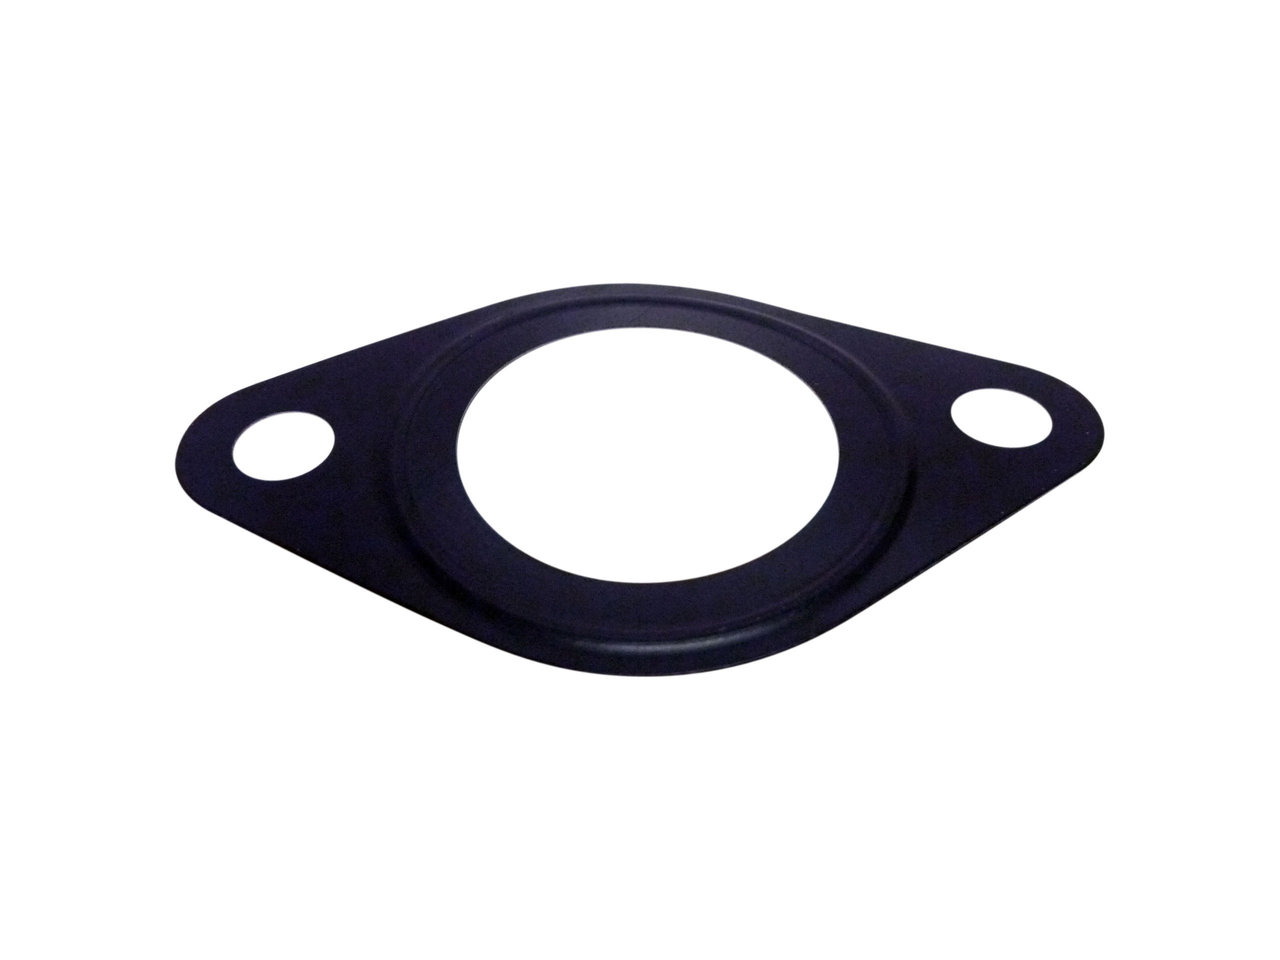 Oil Filter Pipe Gasket For Land Rover Td5 Discovery 2 Defender